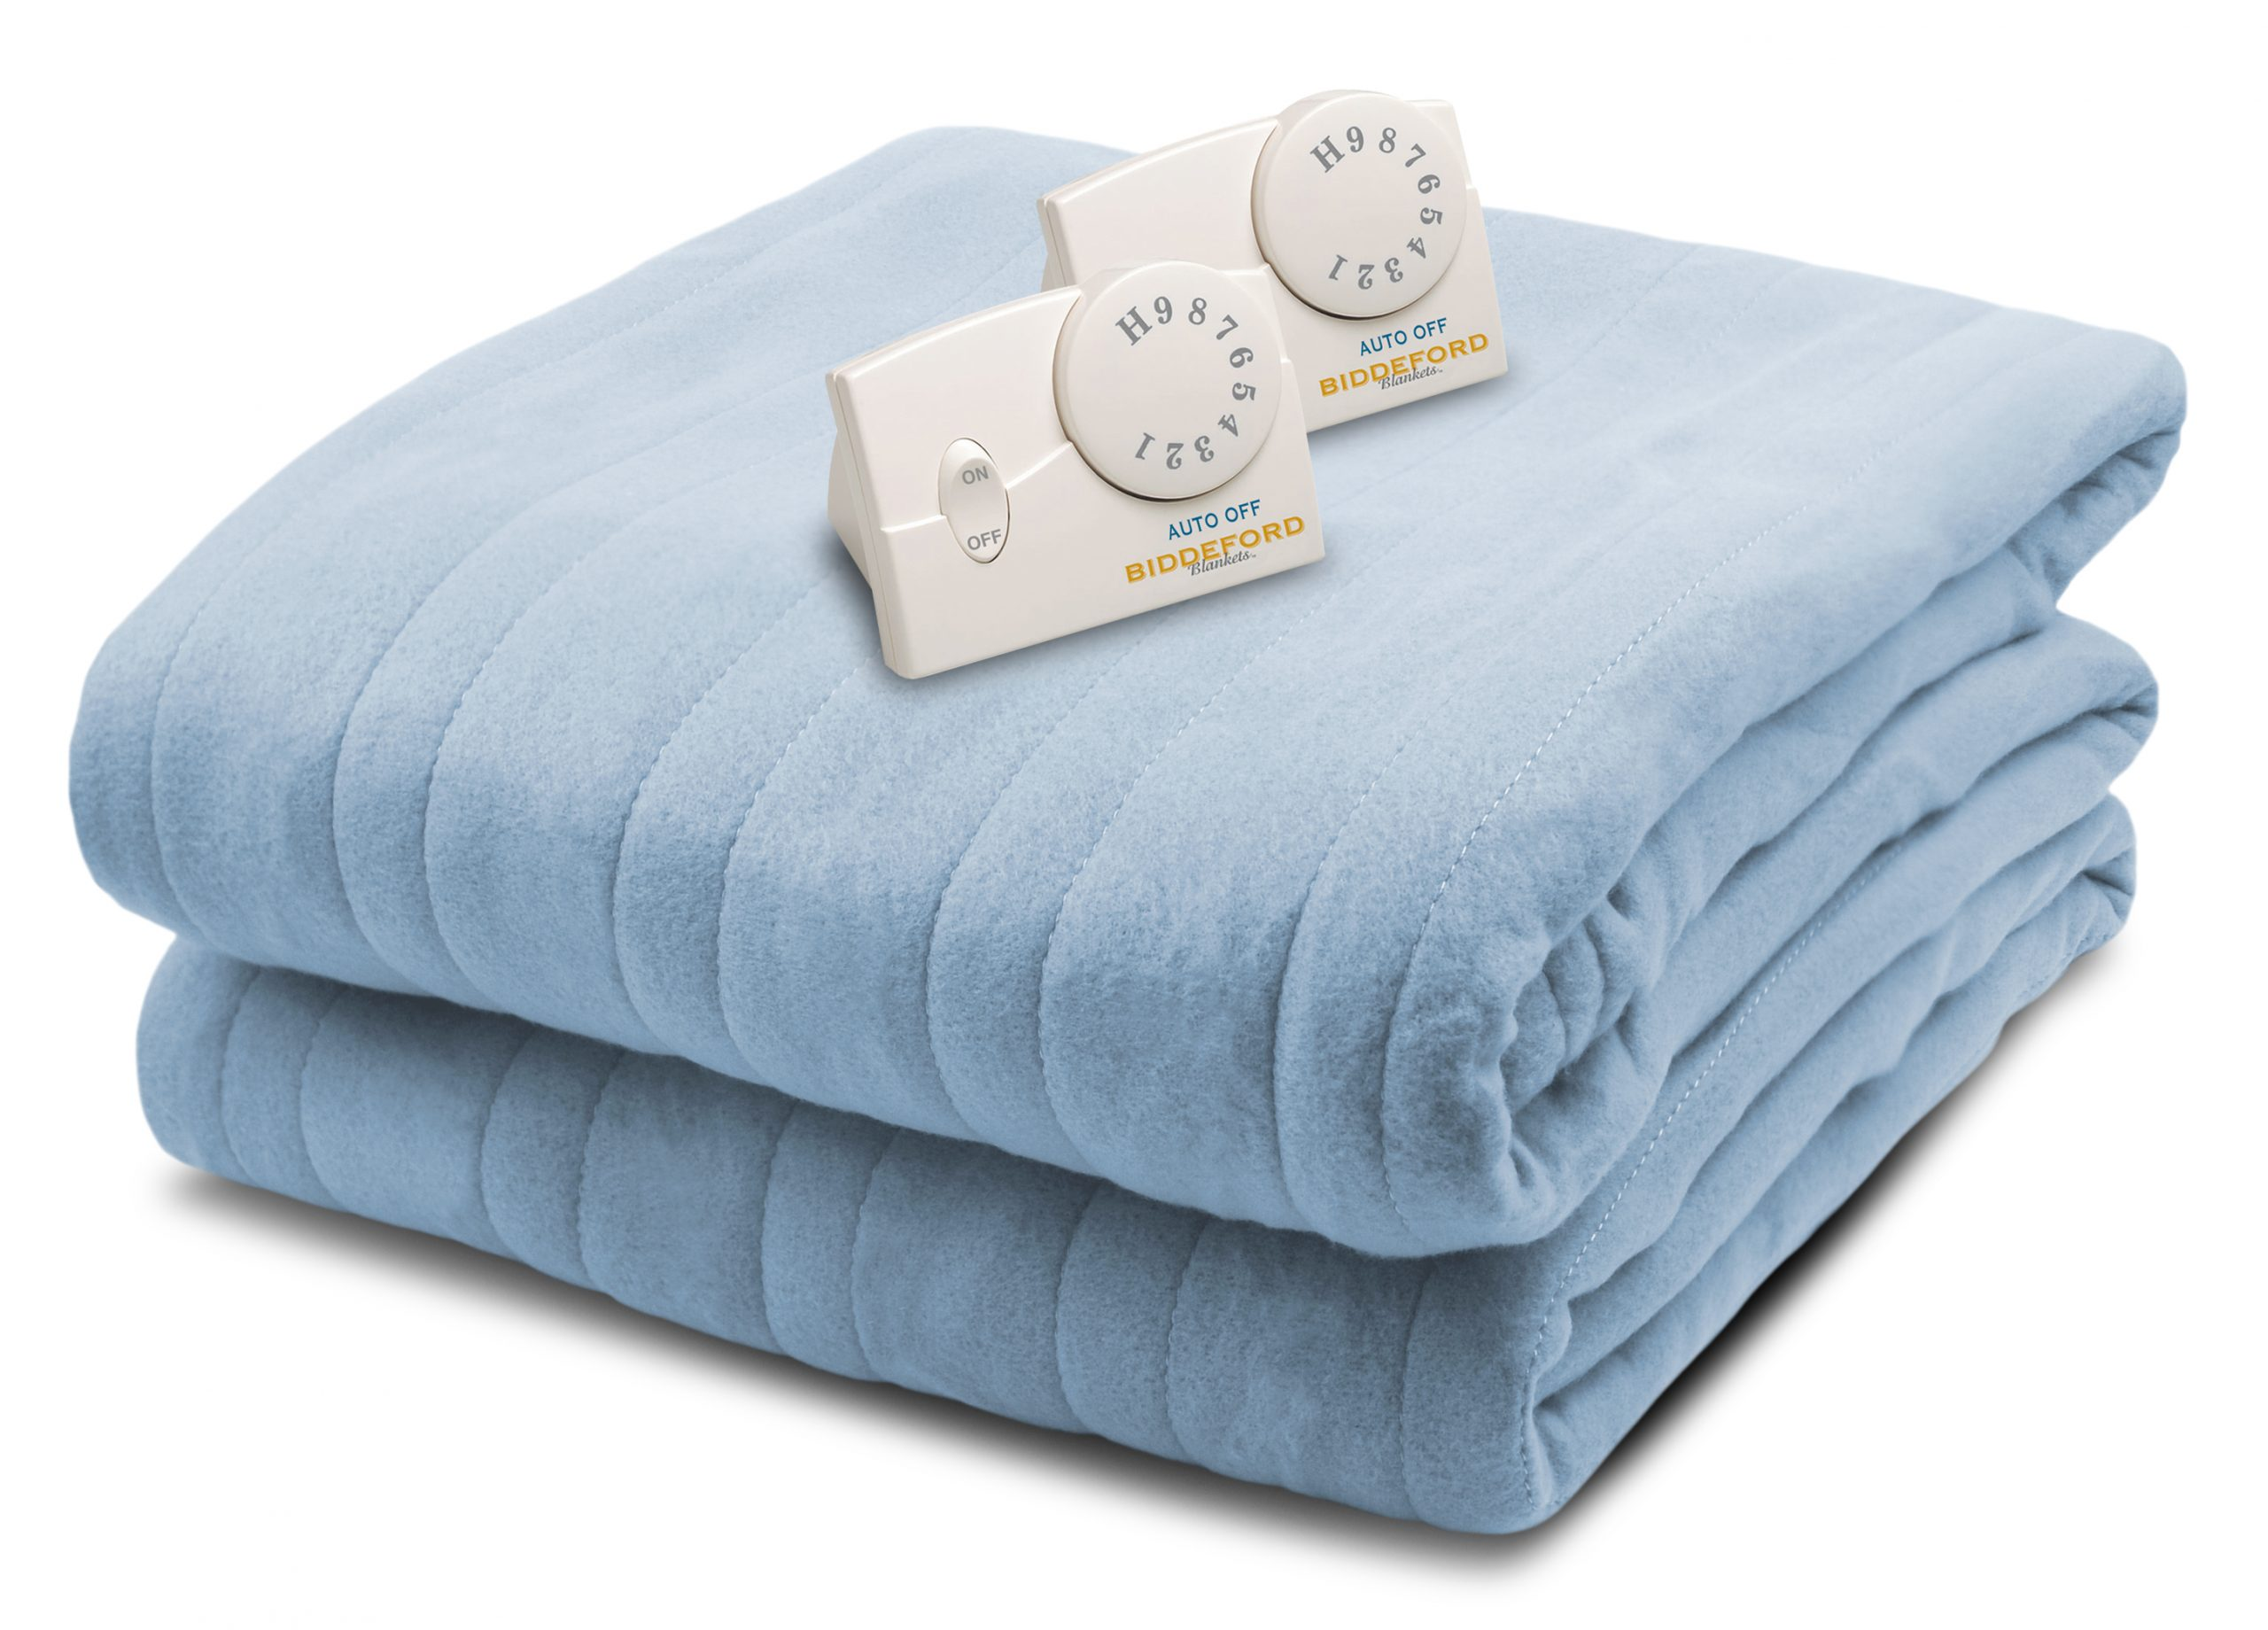 Biddeford Heated Comfort Knit Blanket